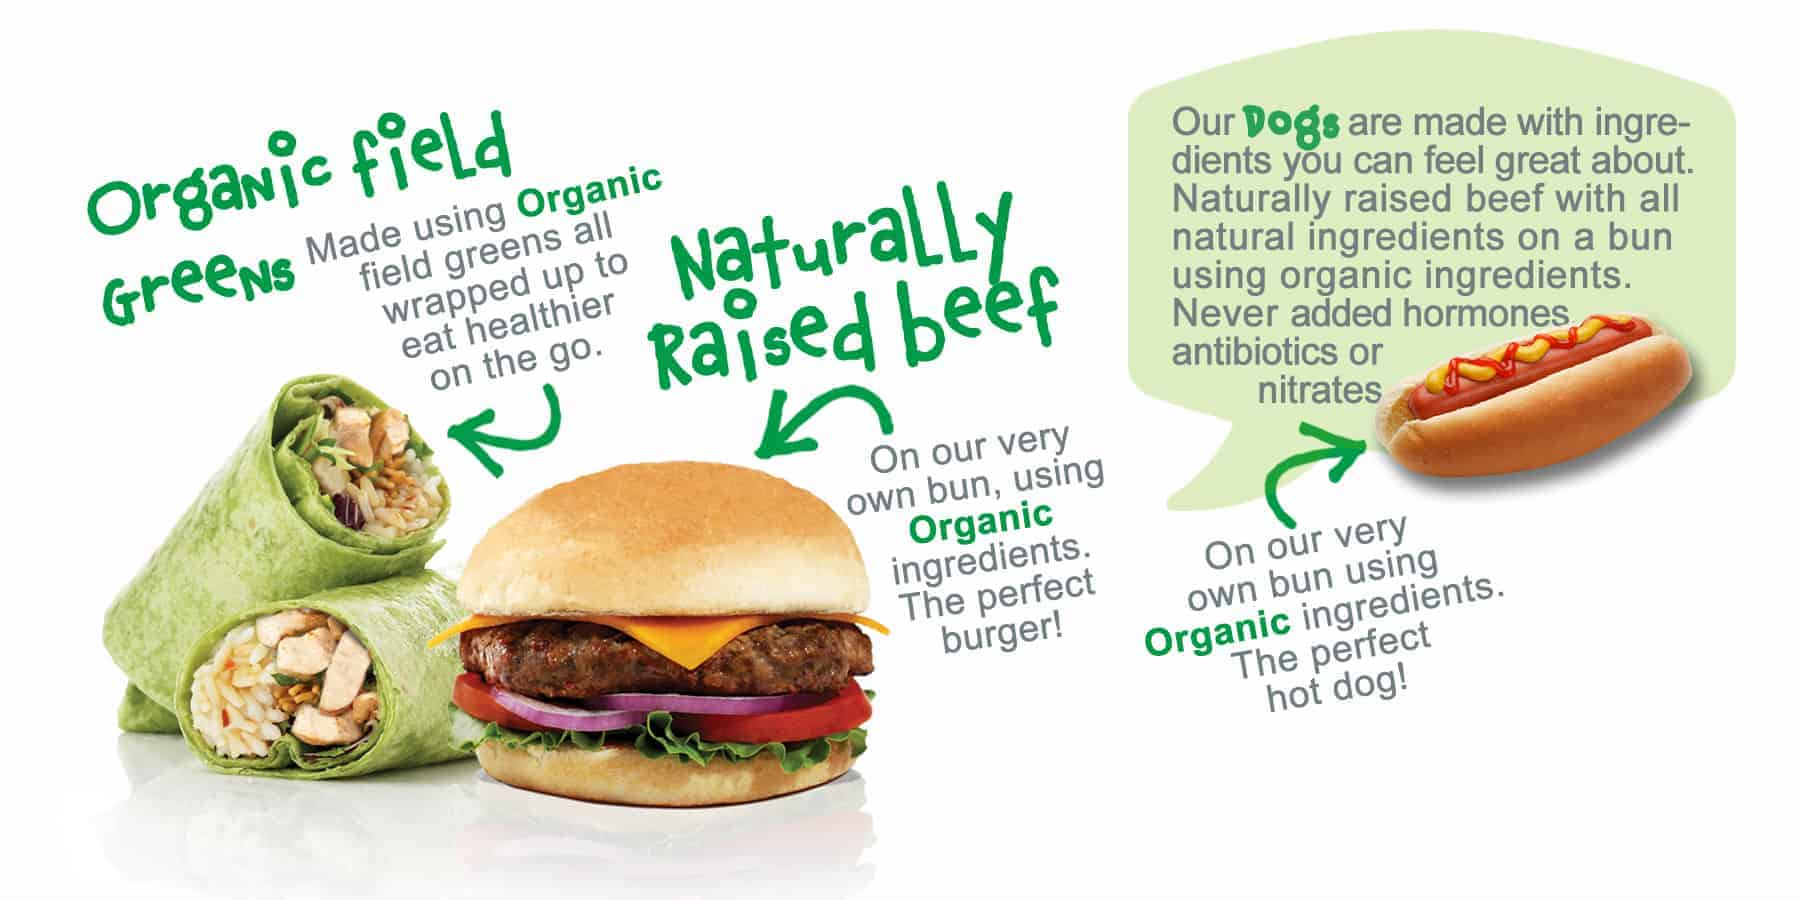 Naturally raised beef - EVOS Difference